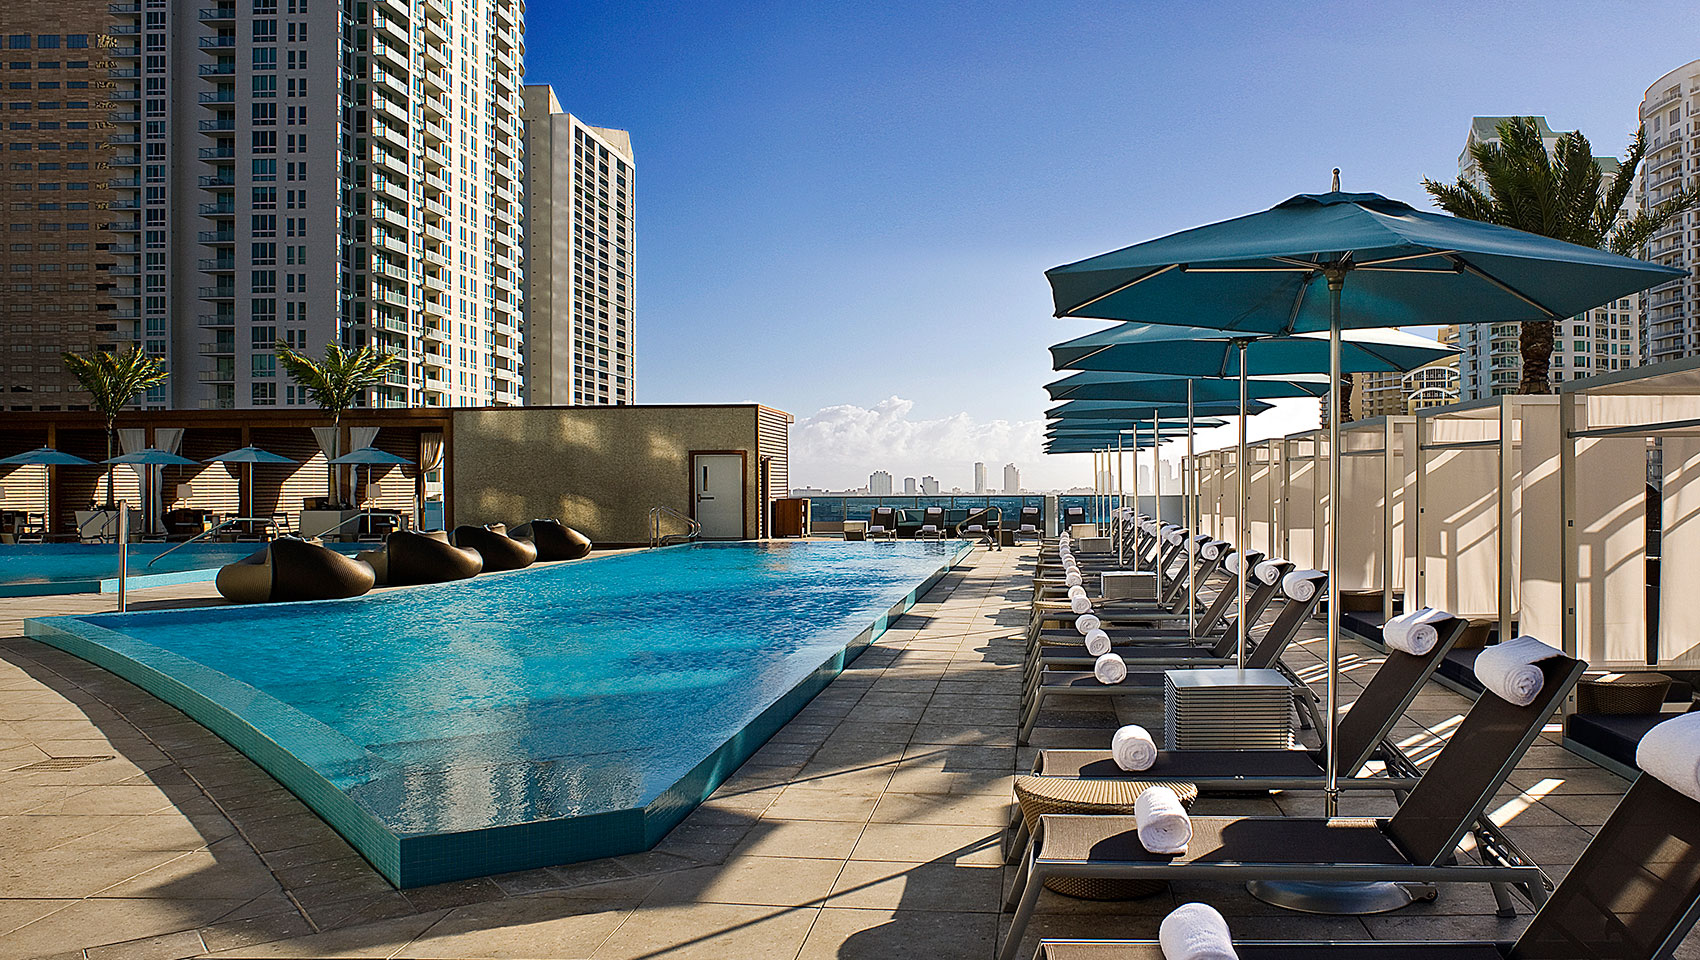 Miami Hotels With Rooftop Pools